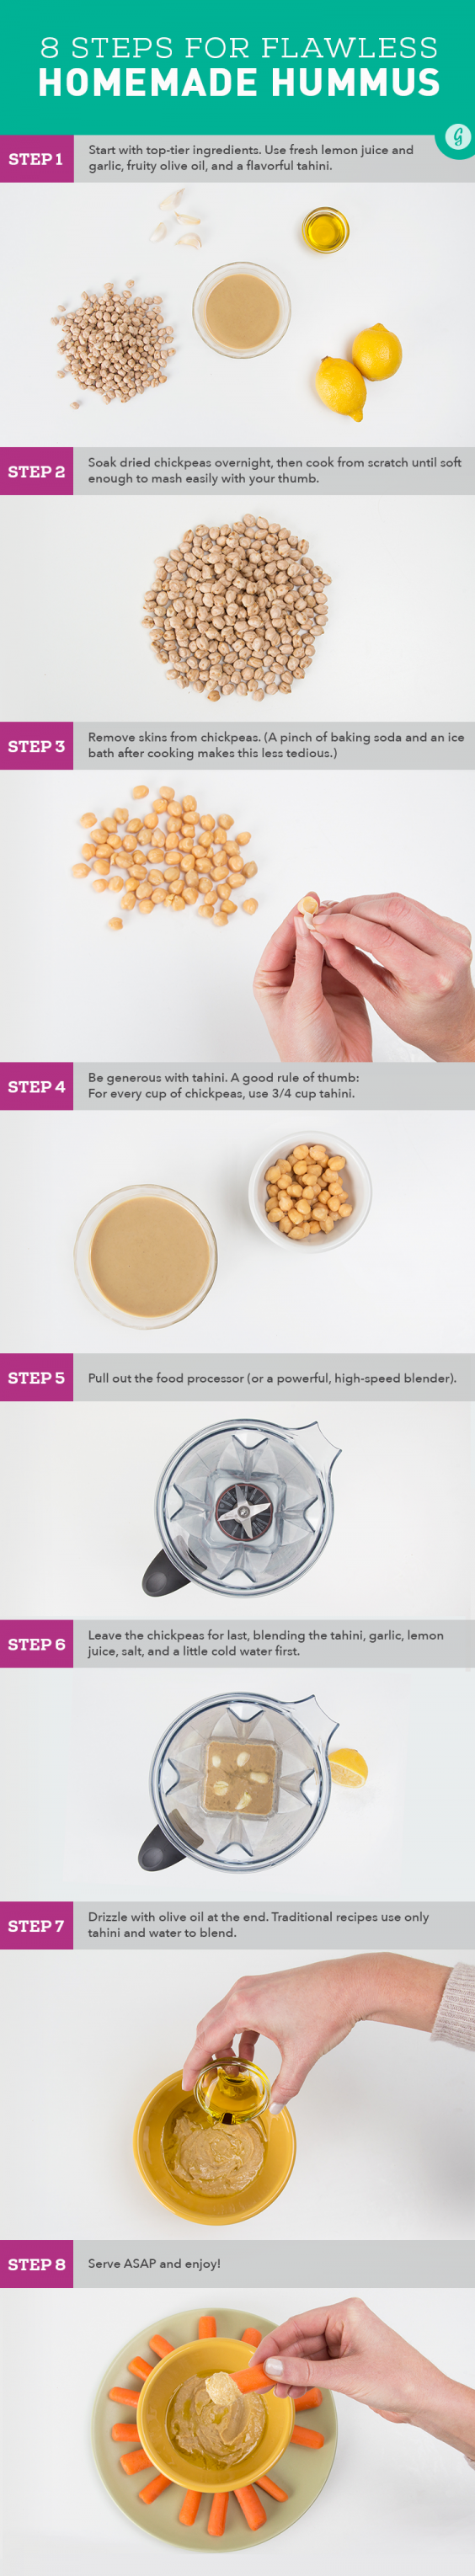 How to Make the Best Hummus You've Ever Tasted